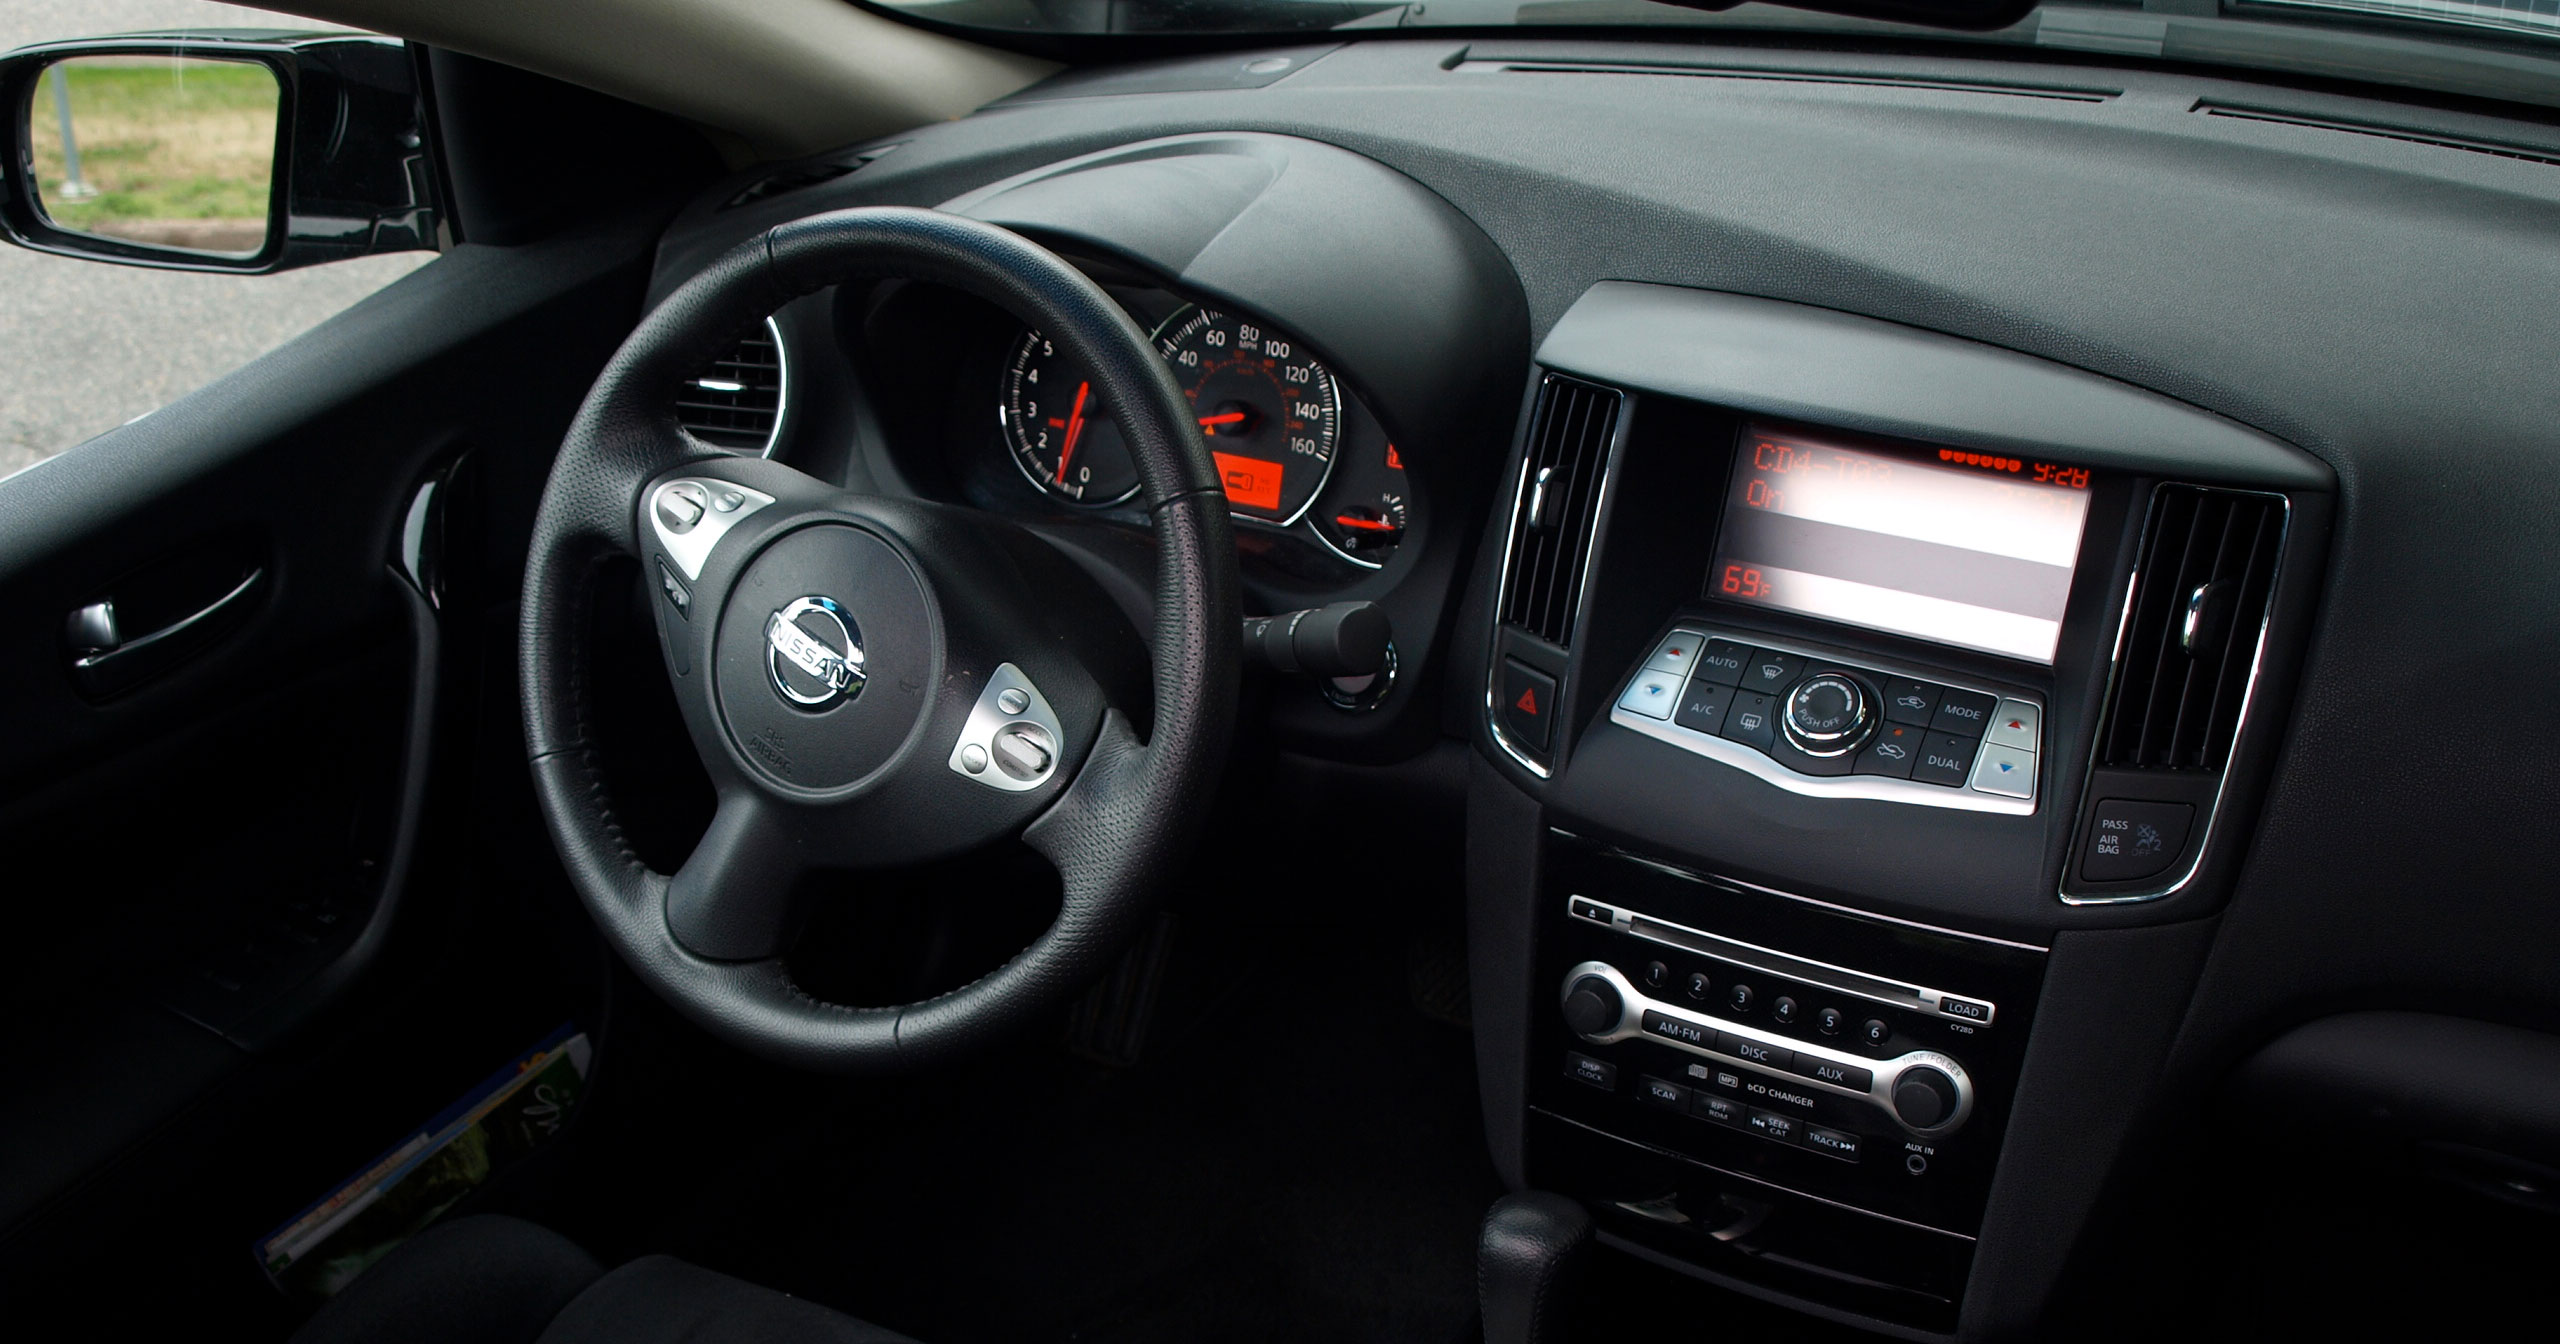 How to Keep Your Vehicle's Interior Looking Like New